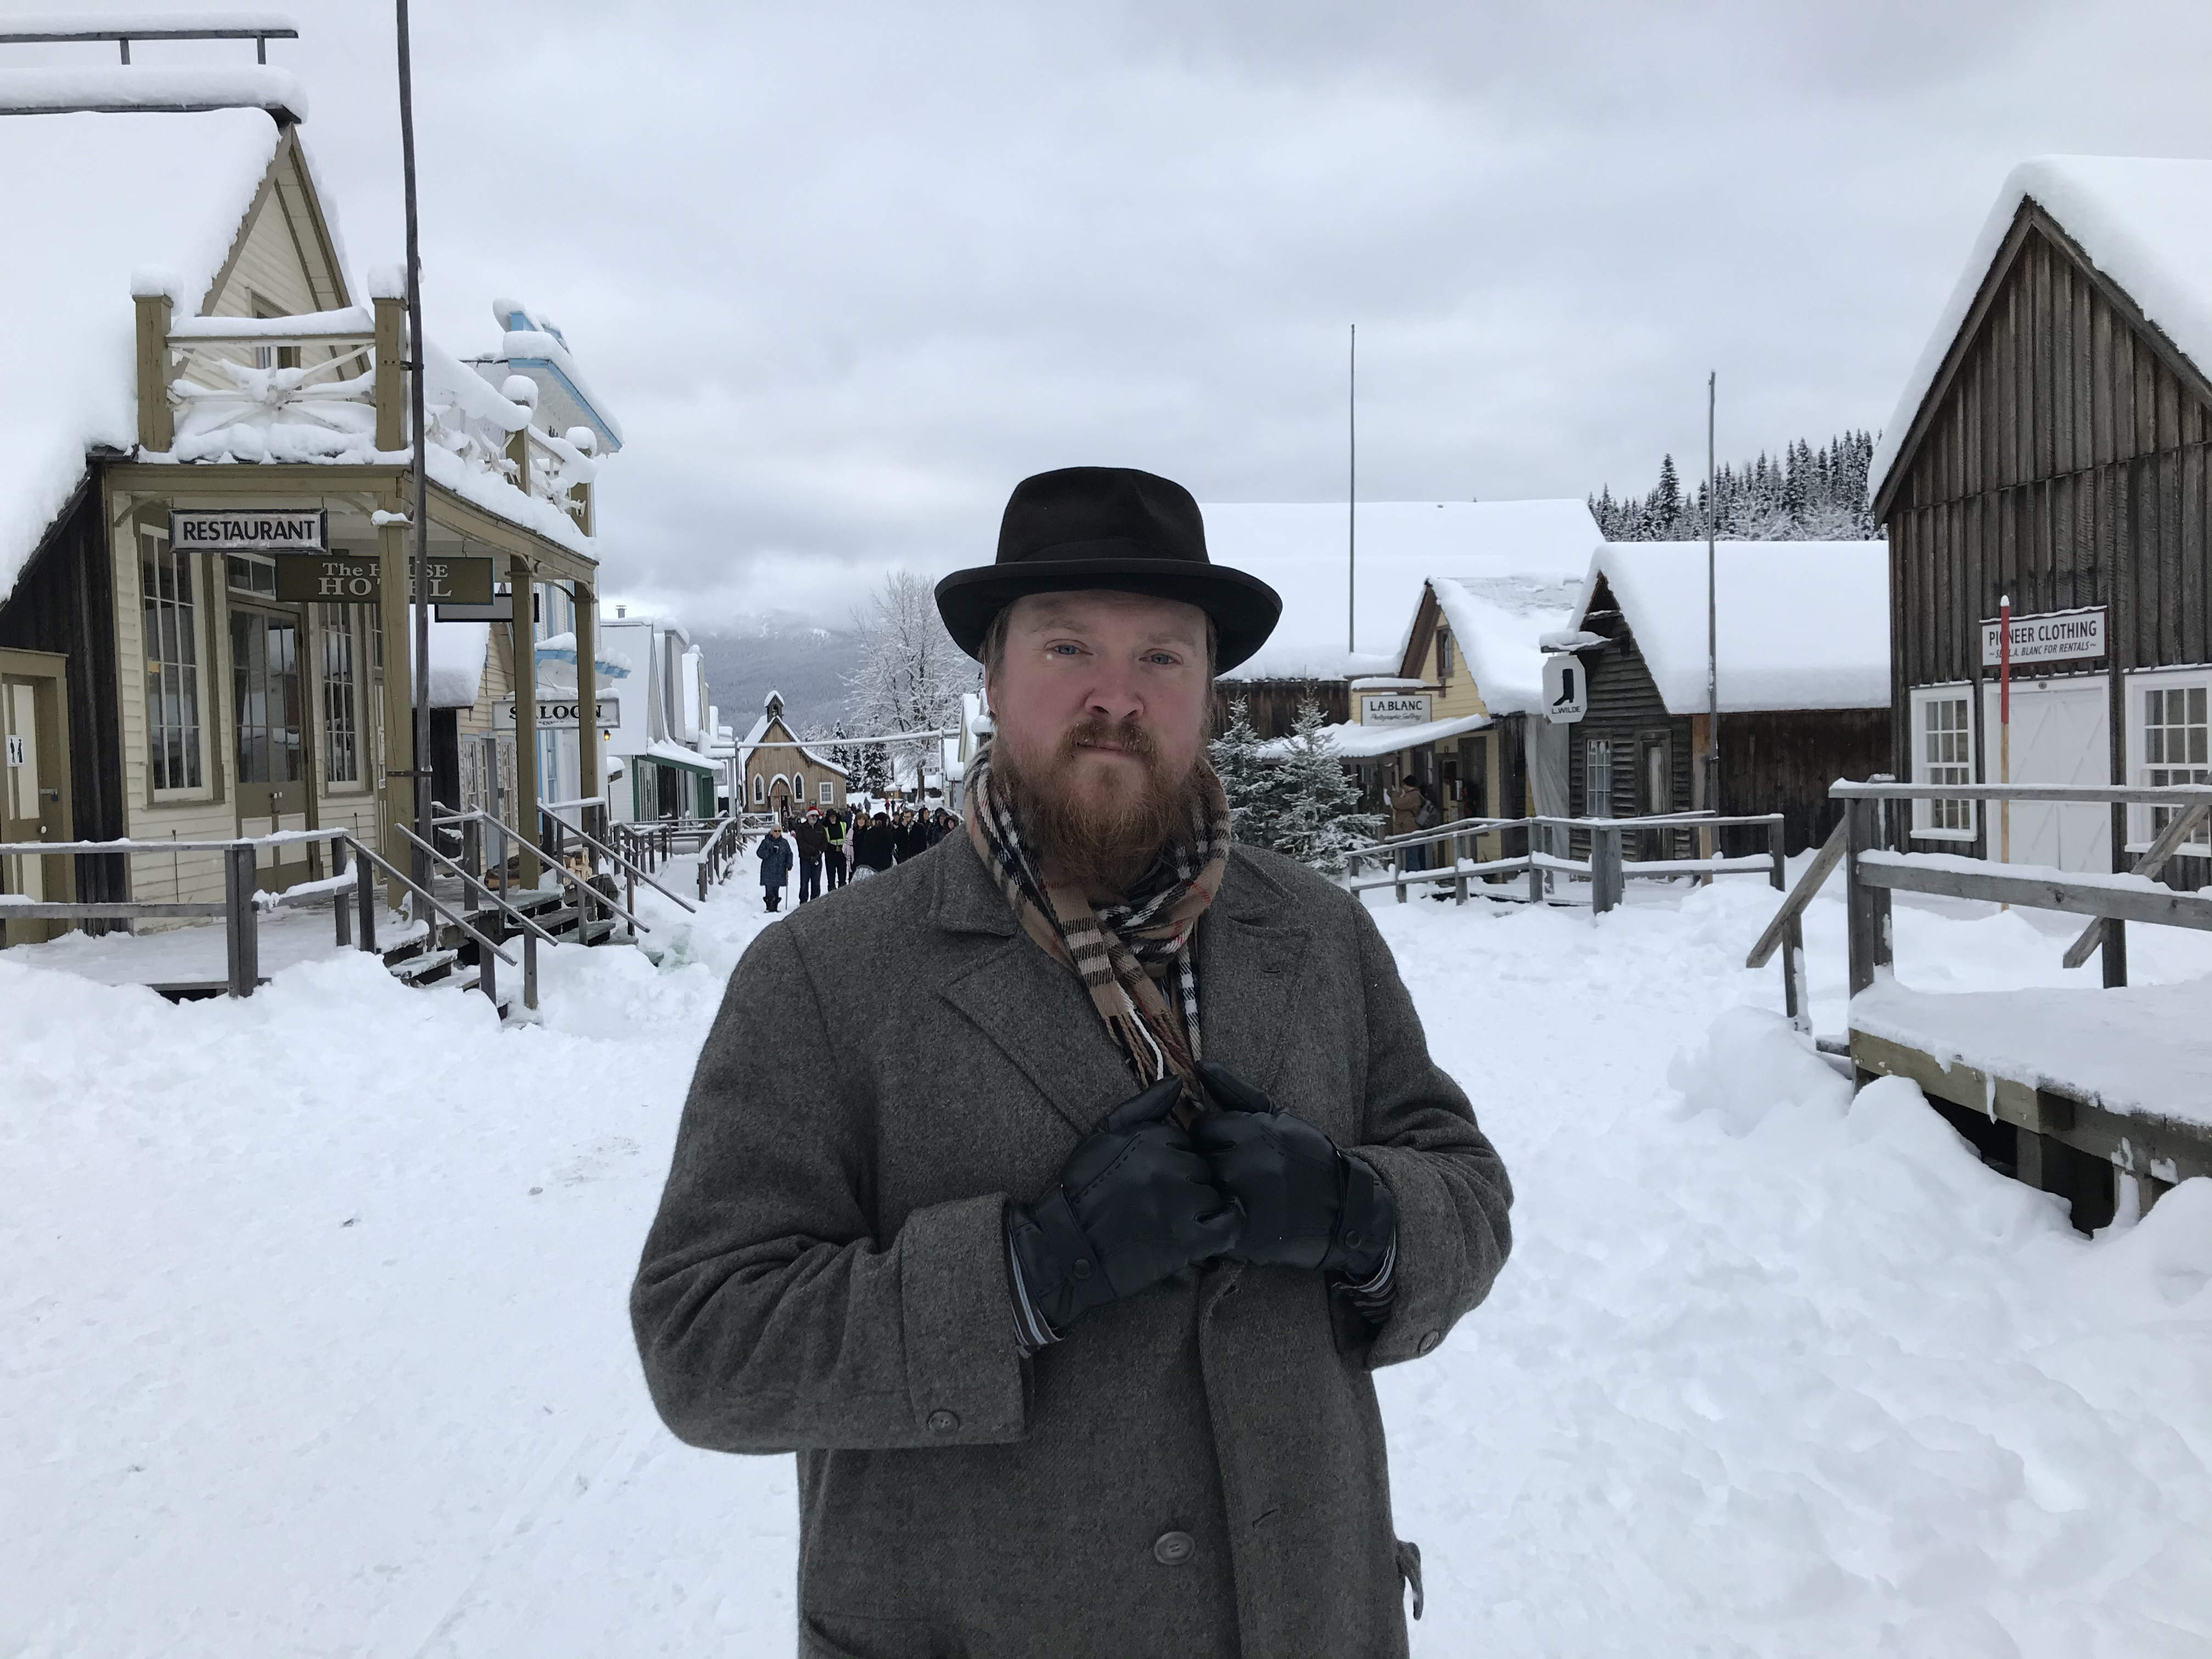 Stewart Cawood at Victorian Christmas